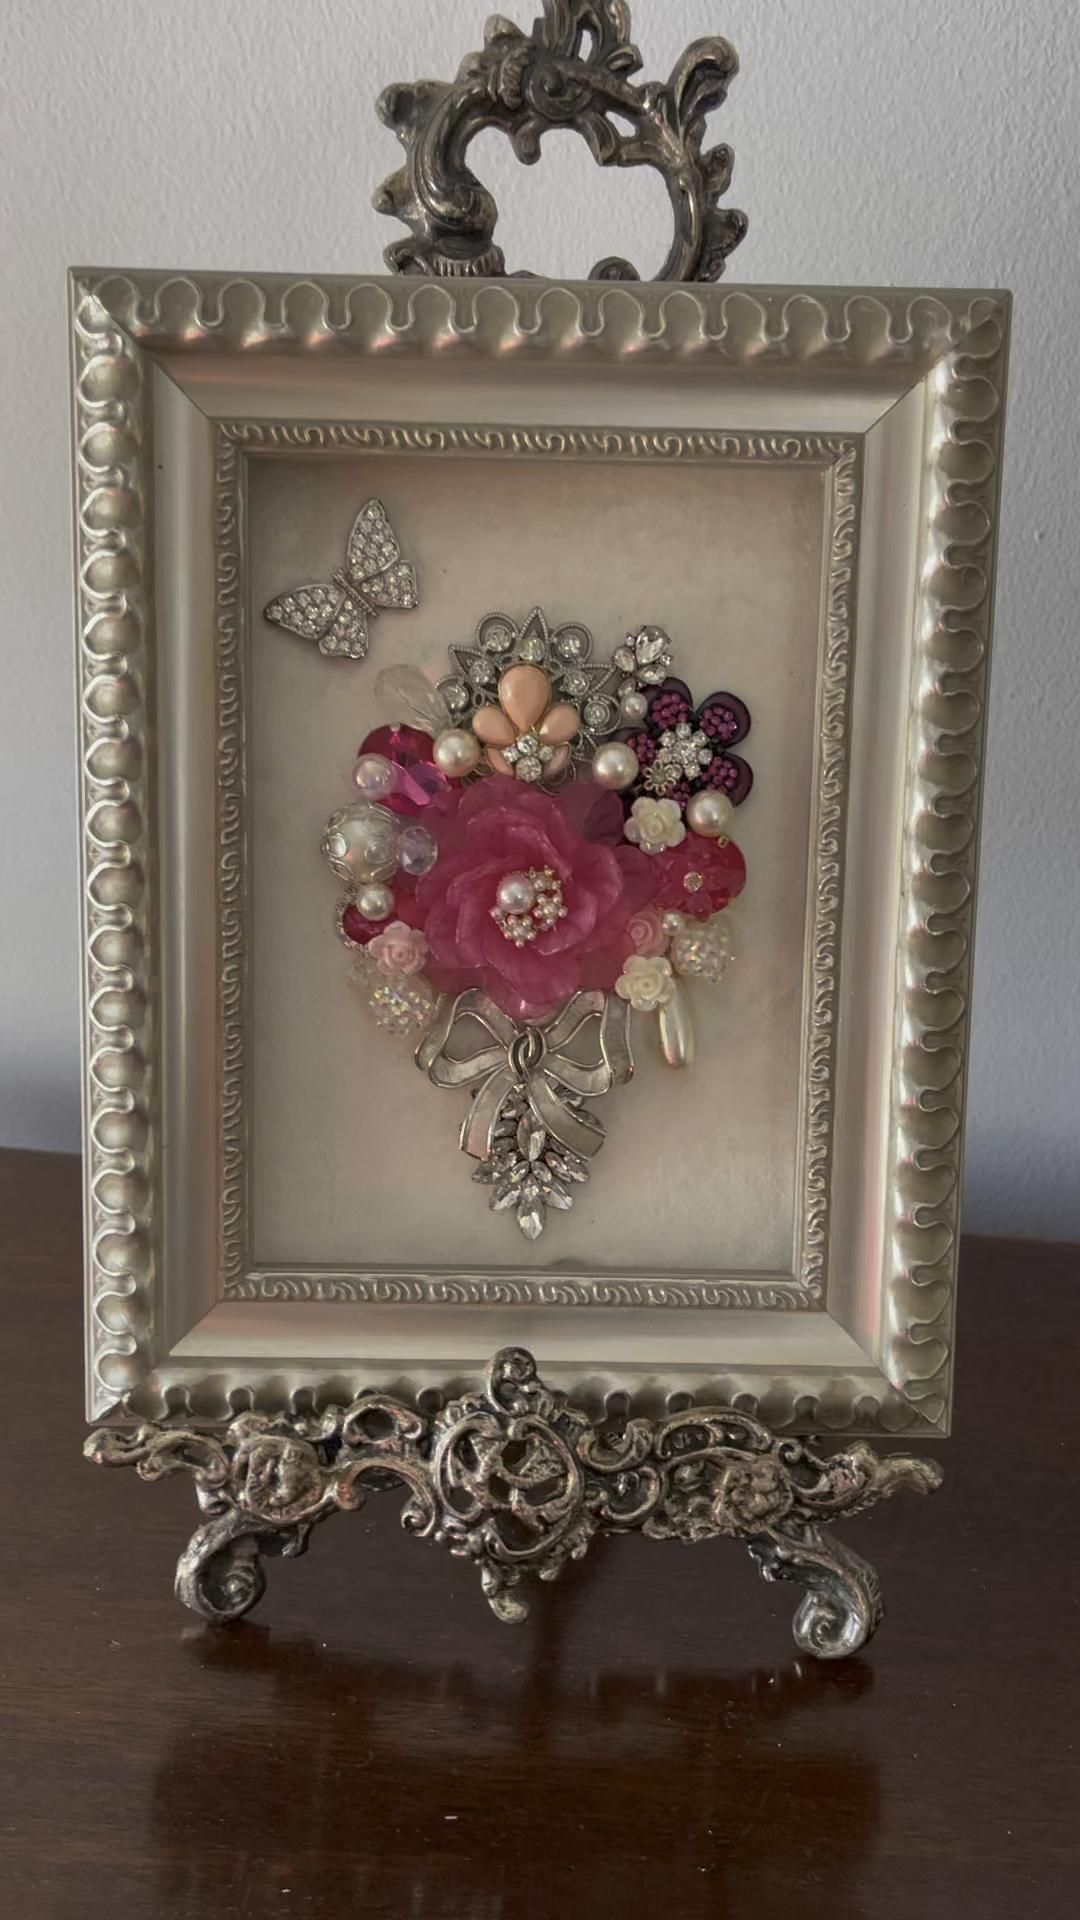 Handcrafted Jewelry Art Framed Vintage Floral Bouq